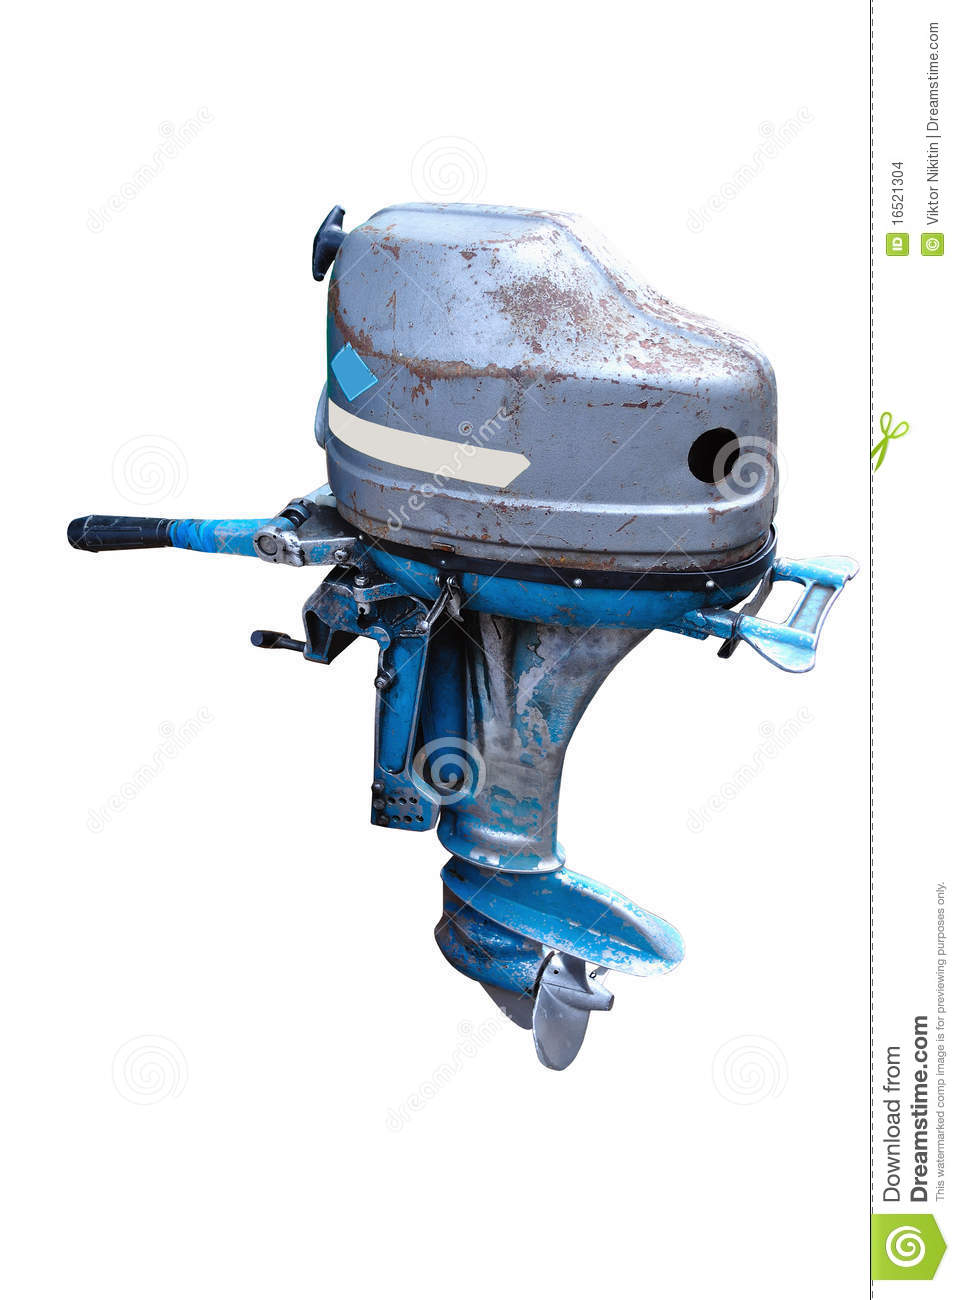 Outboard Motor. Made In The USSR Stock Images - Image: 16521304